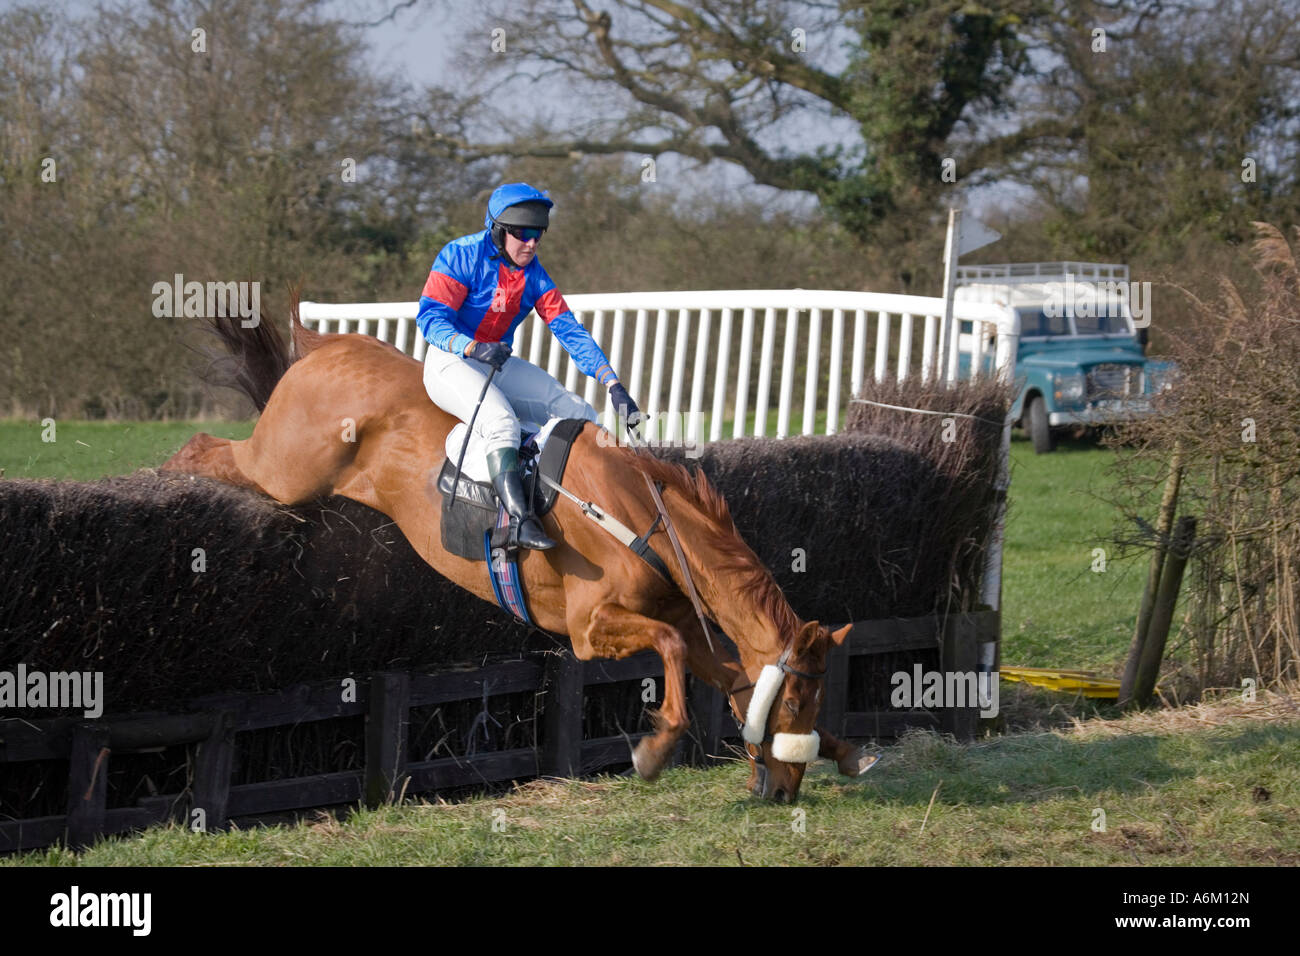 Jockey About To Fall As Horse Fails To Clear Jump At Alpraham Stock Photo Alamy